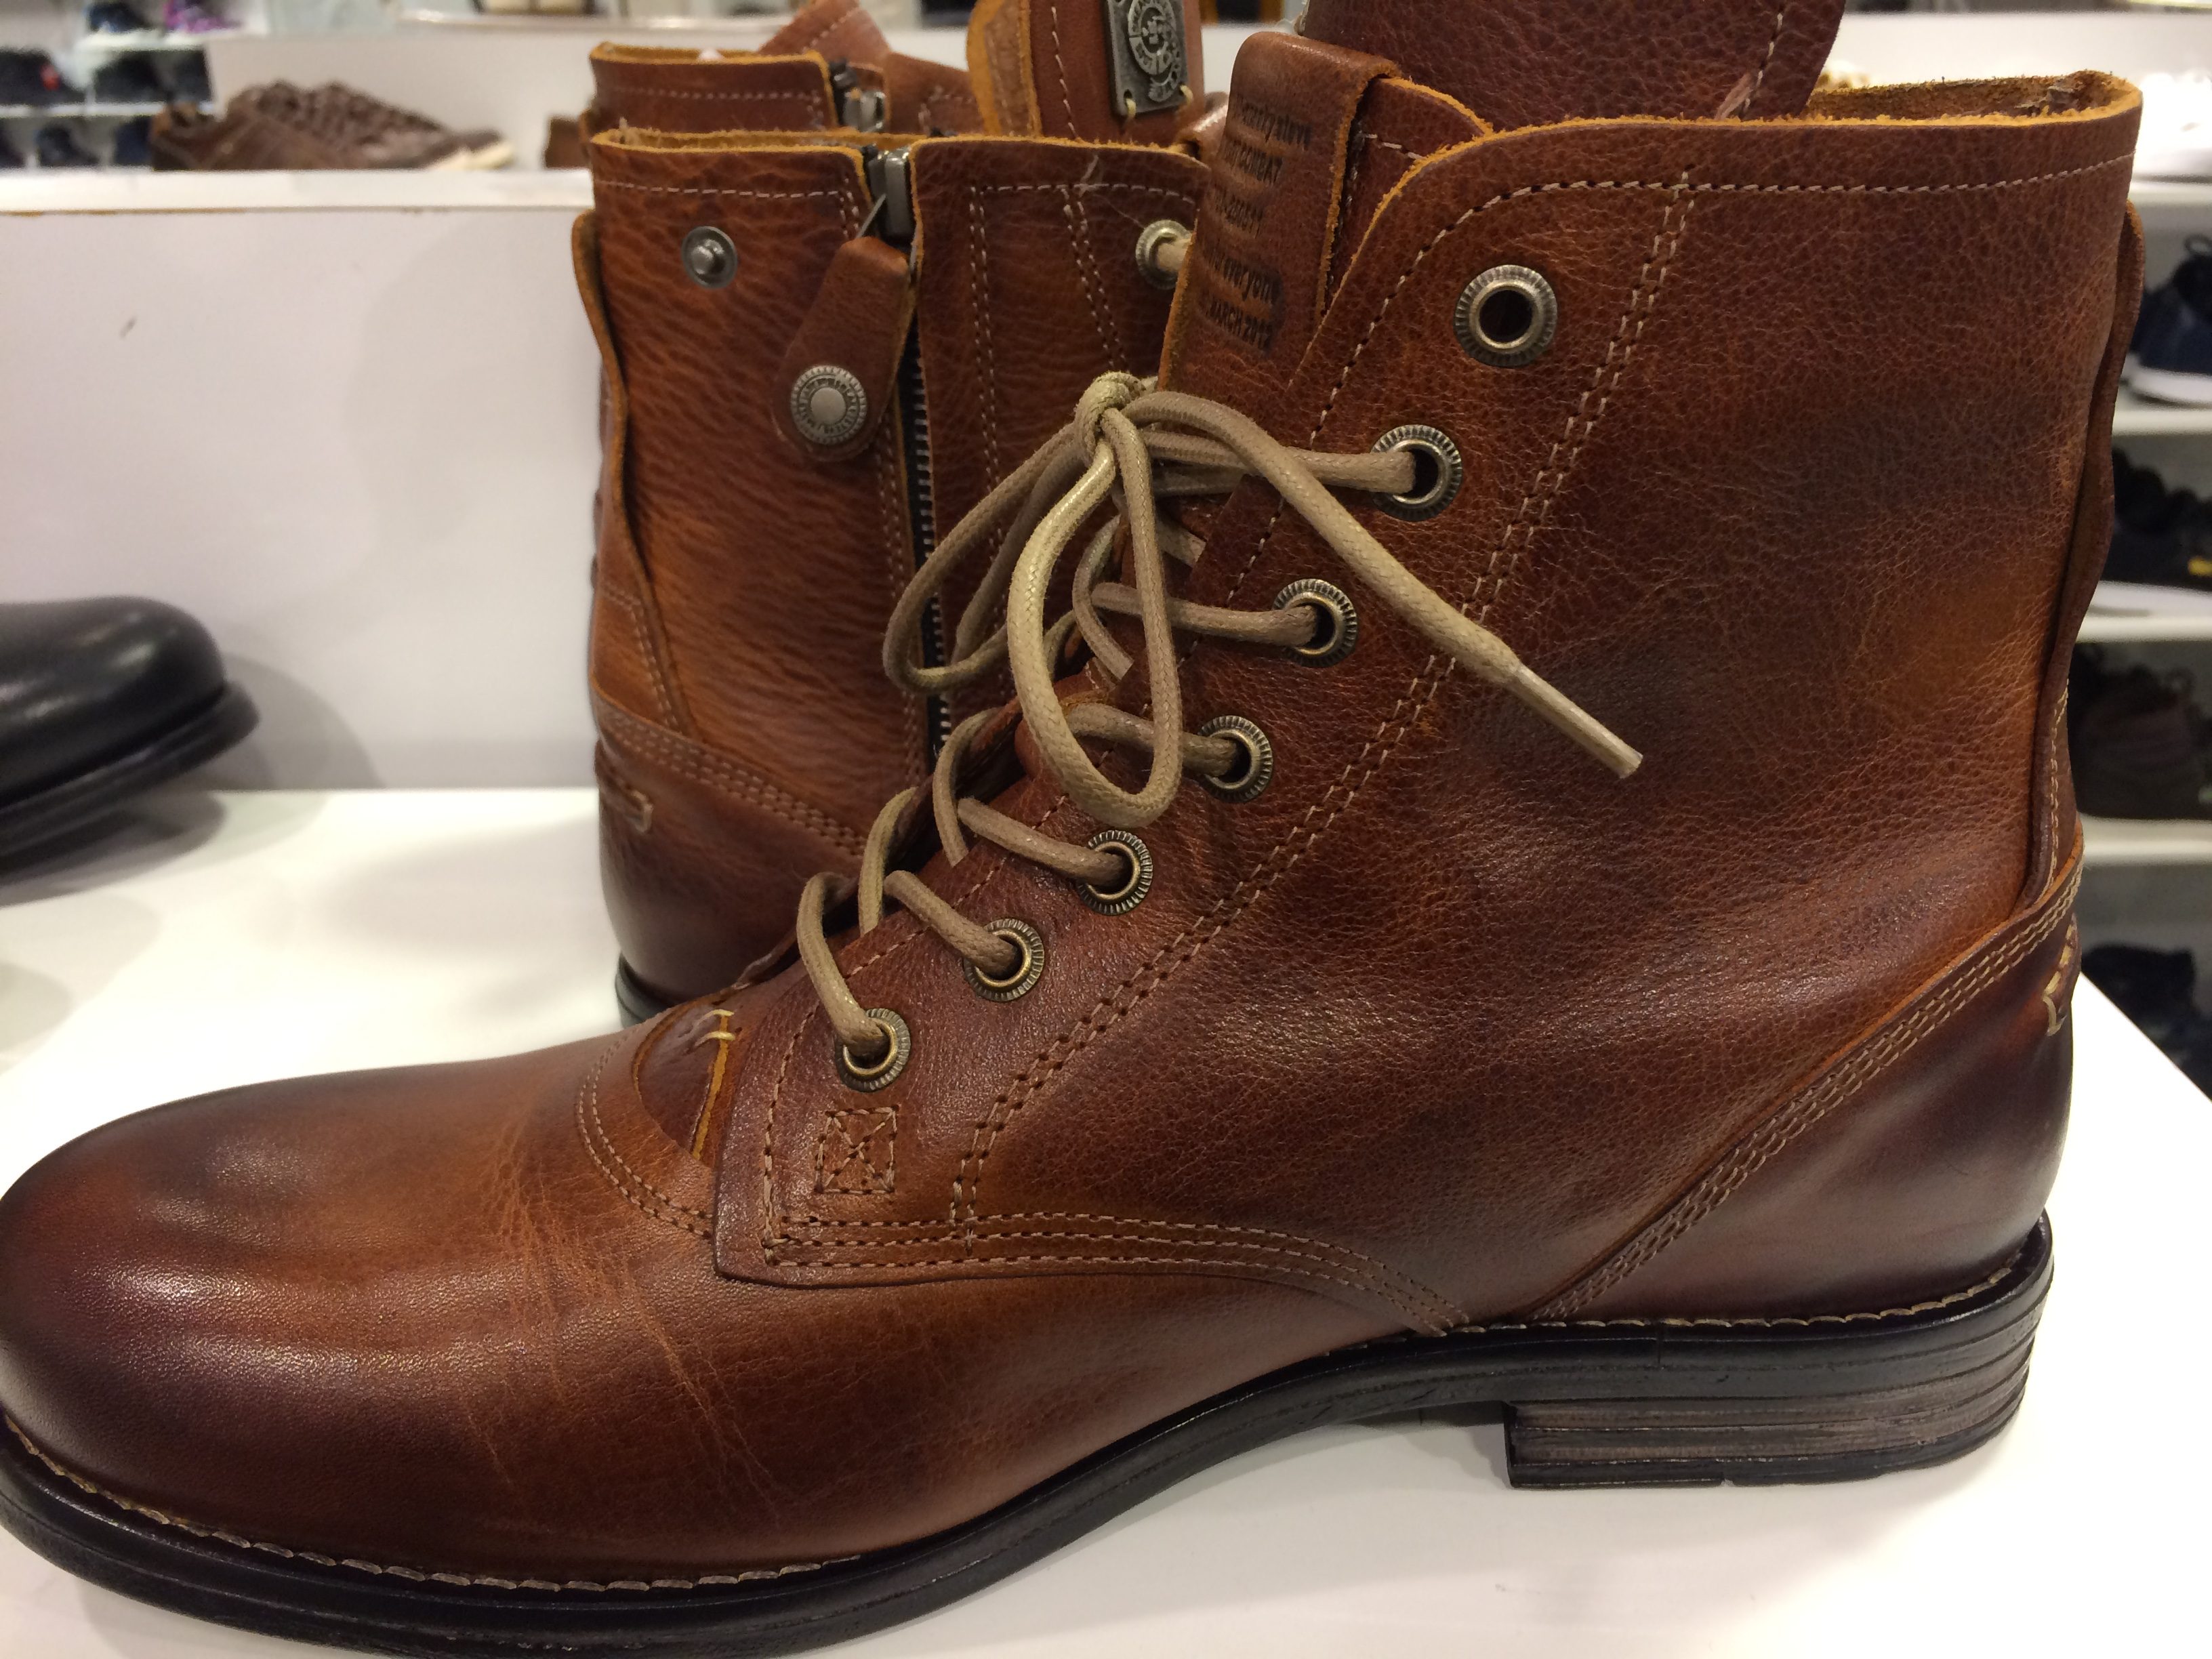 Boots with zips for men, are you serious? A men's boot rant.